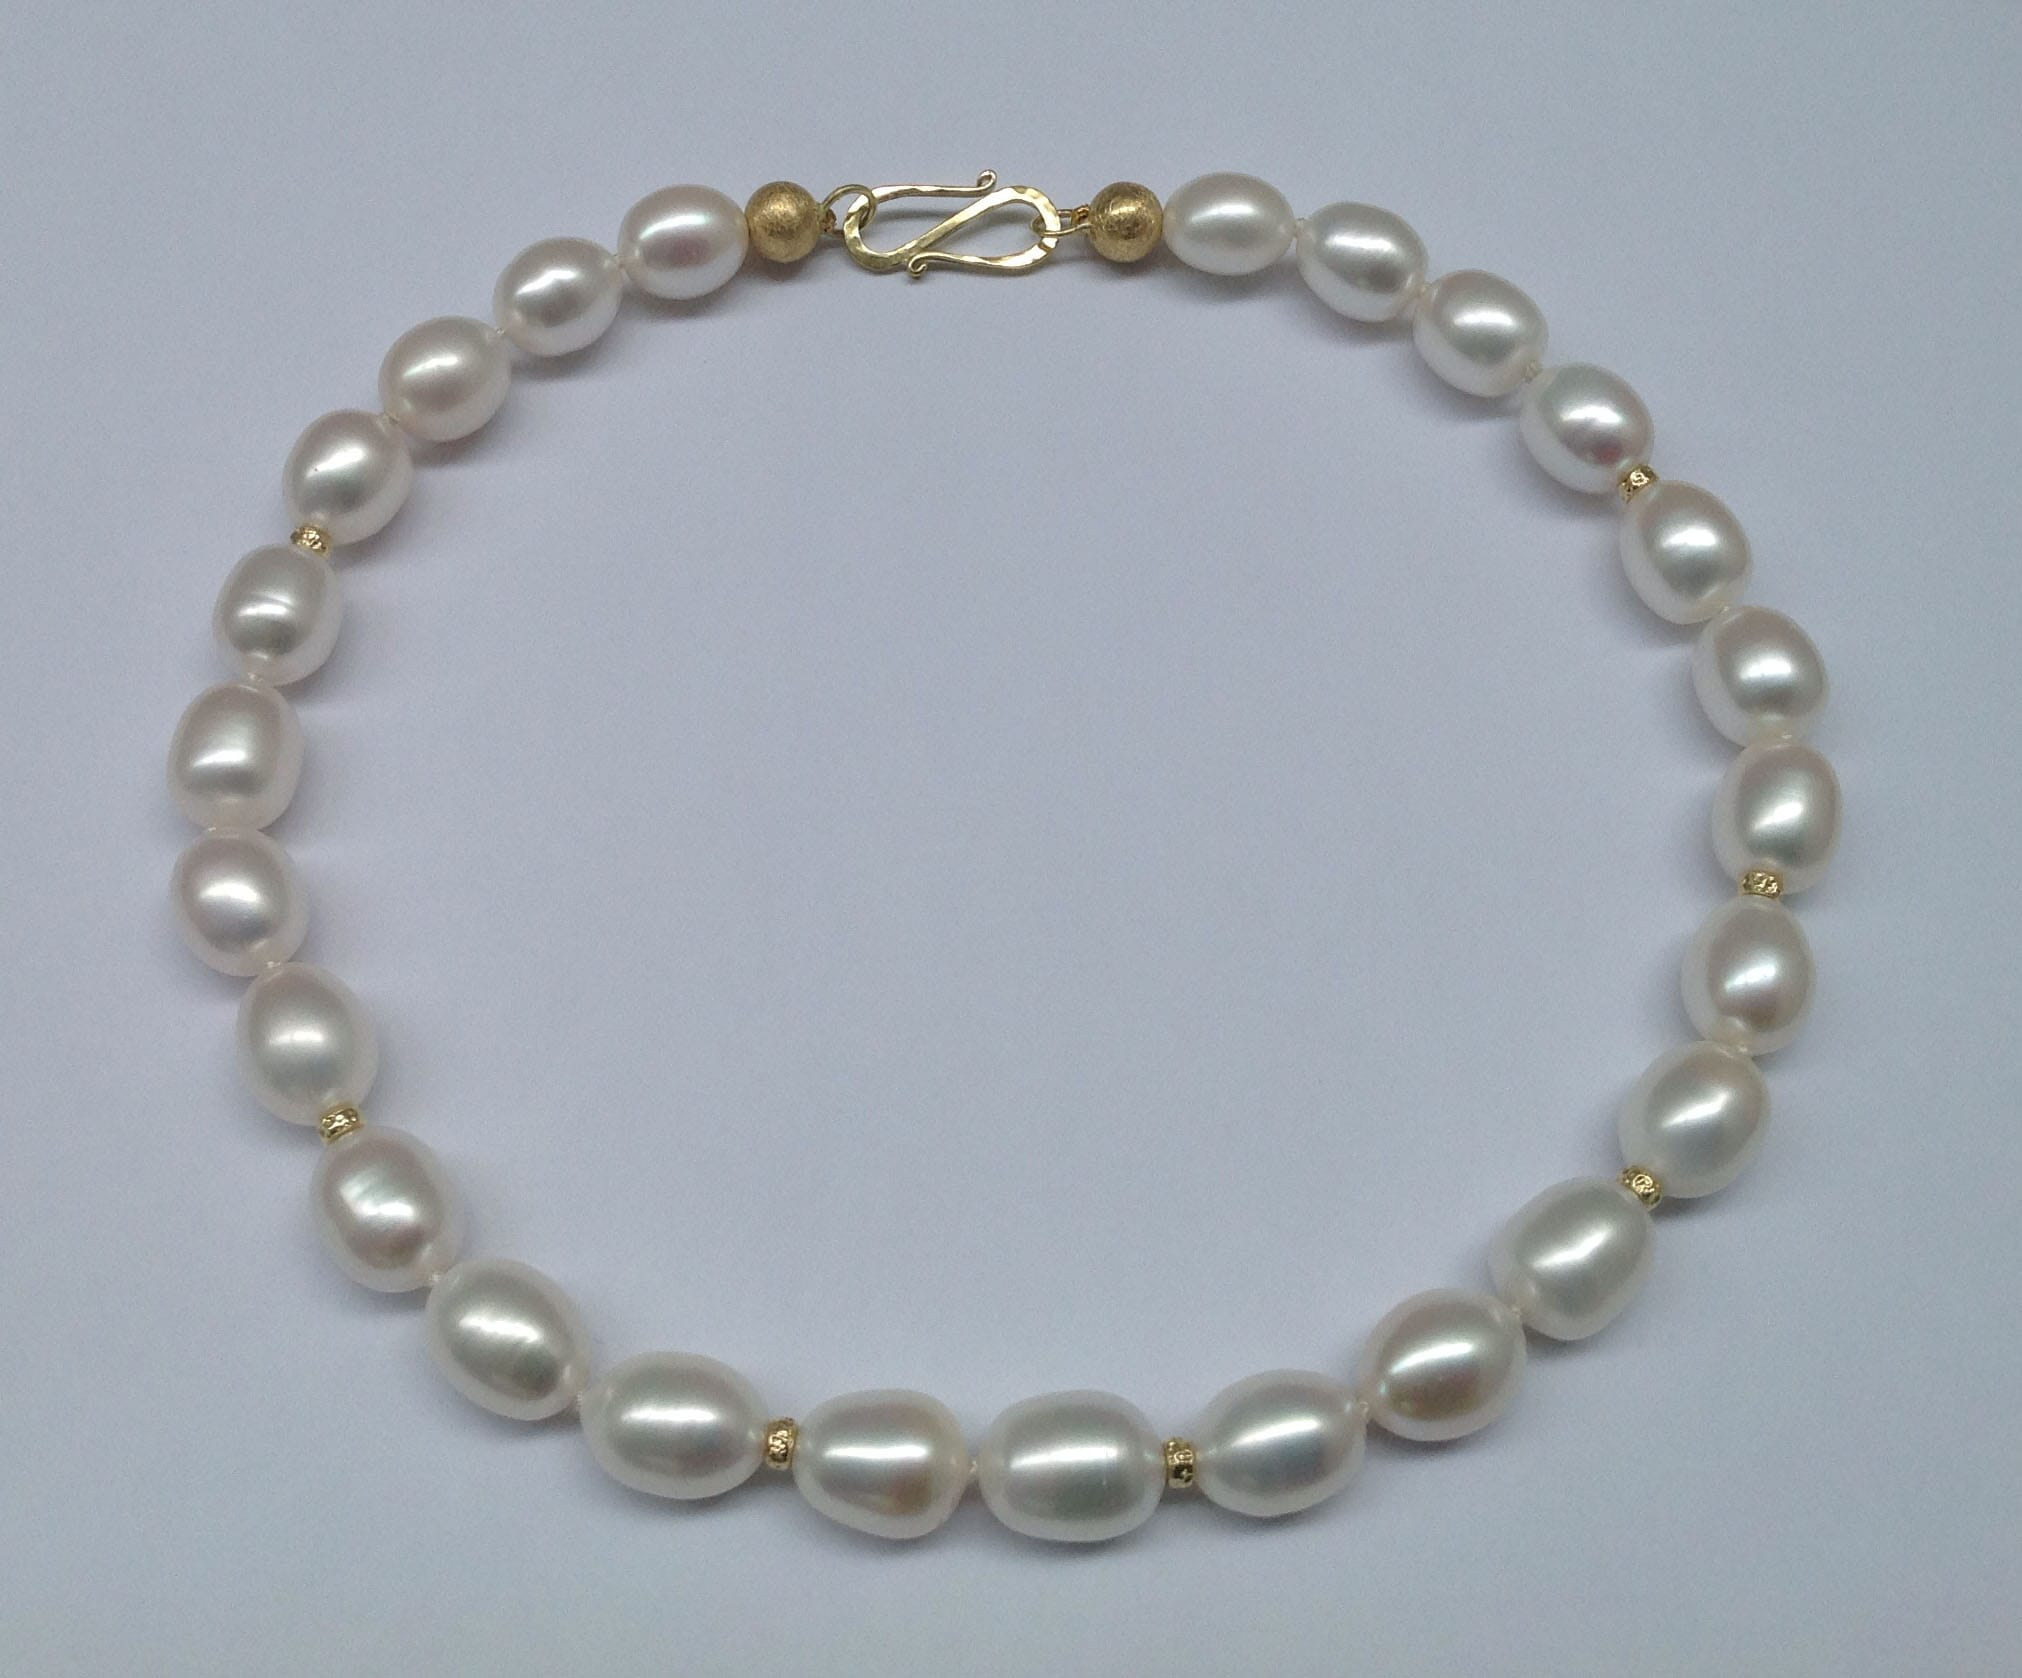 Oval white freshwater pearls, 18 carat yellow gold beads and clasp